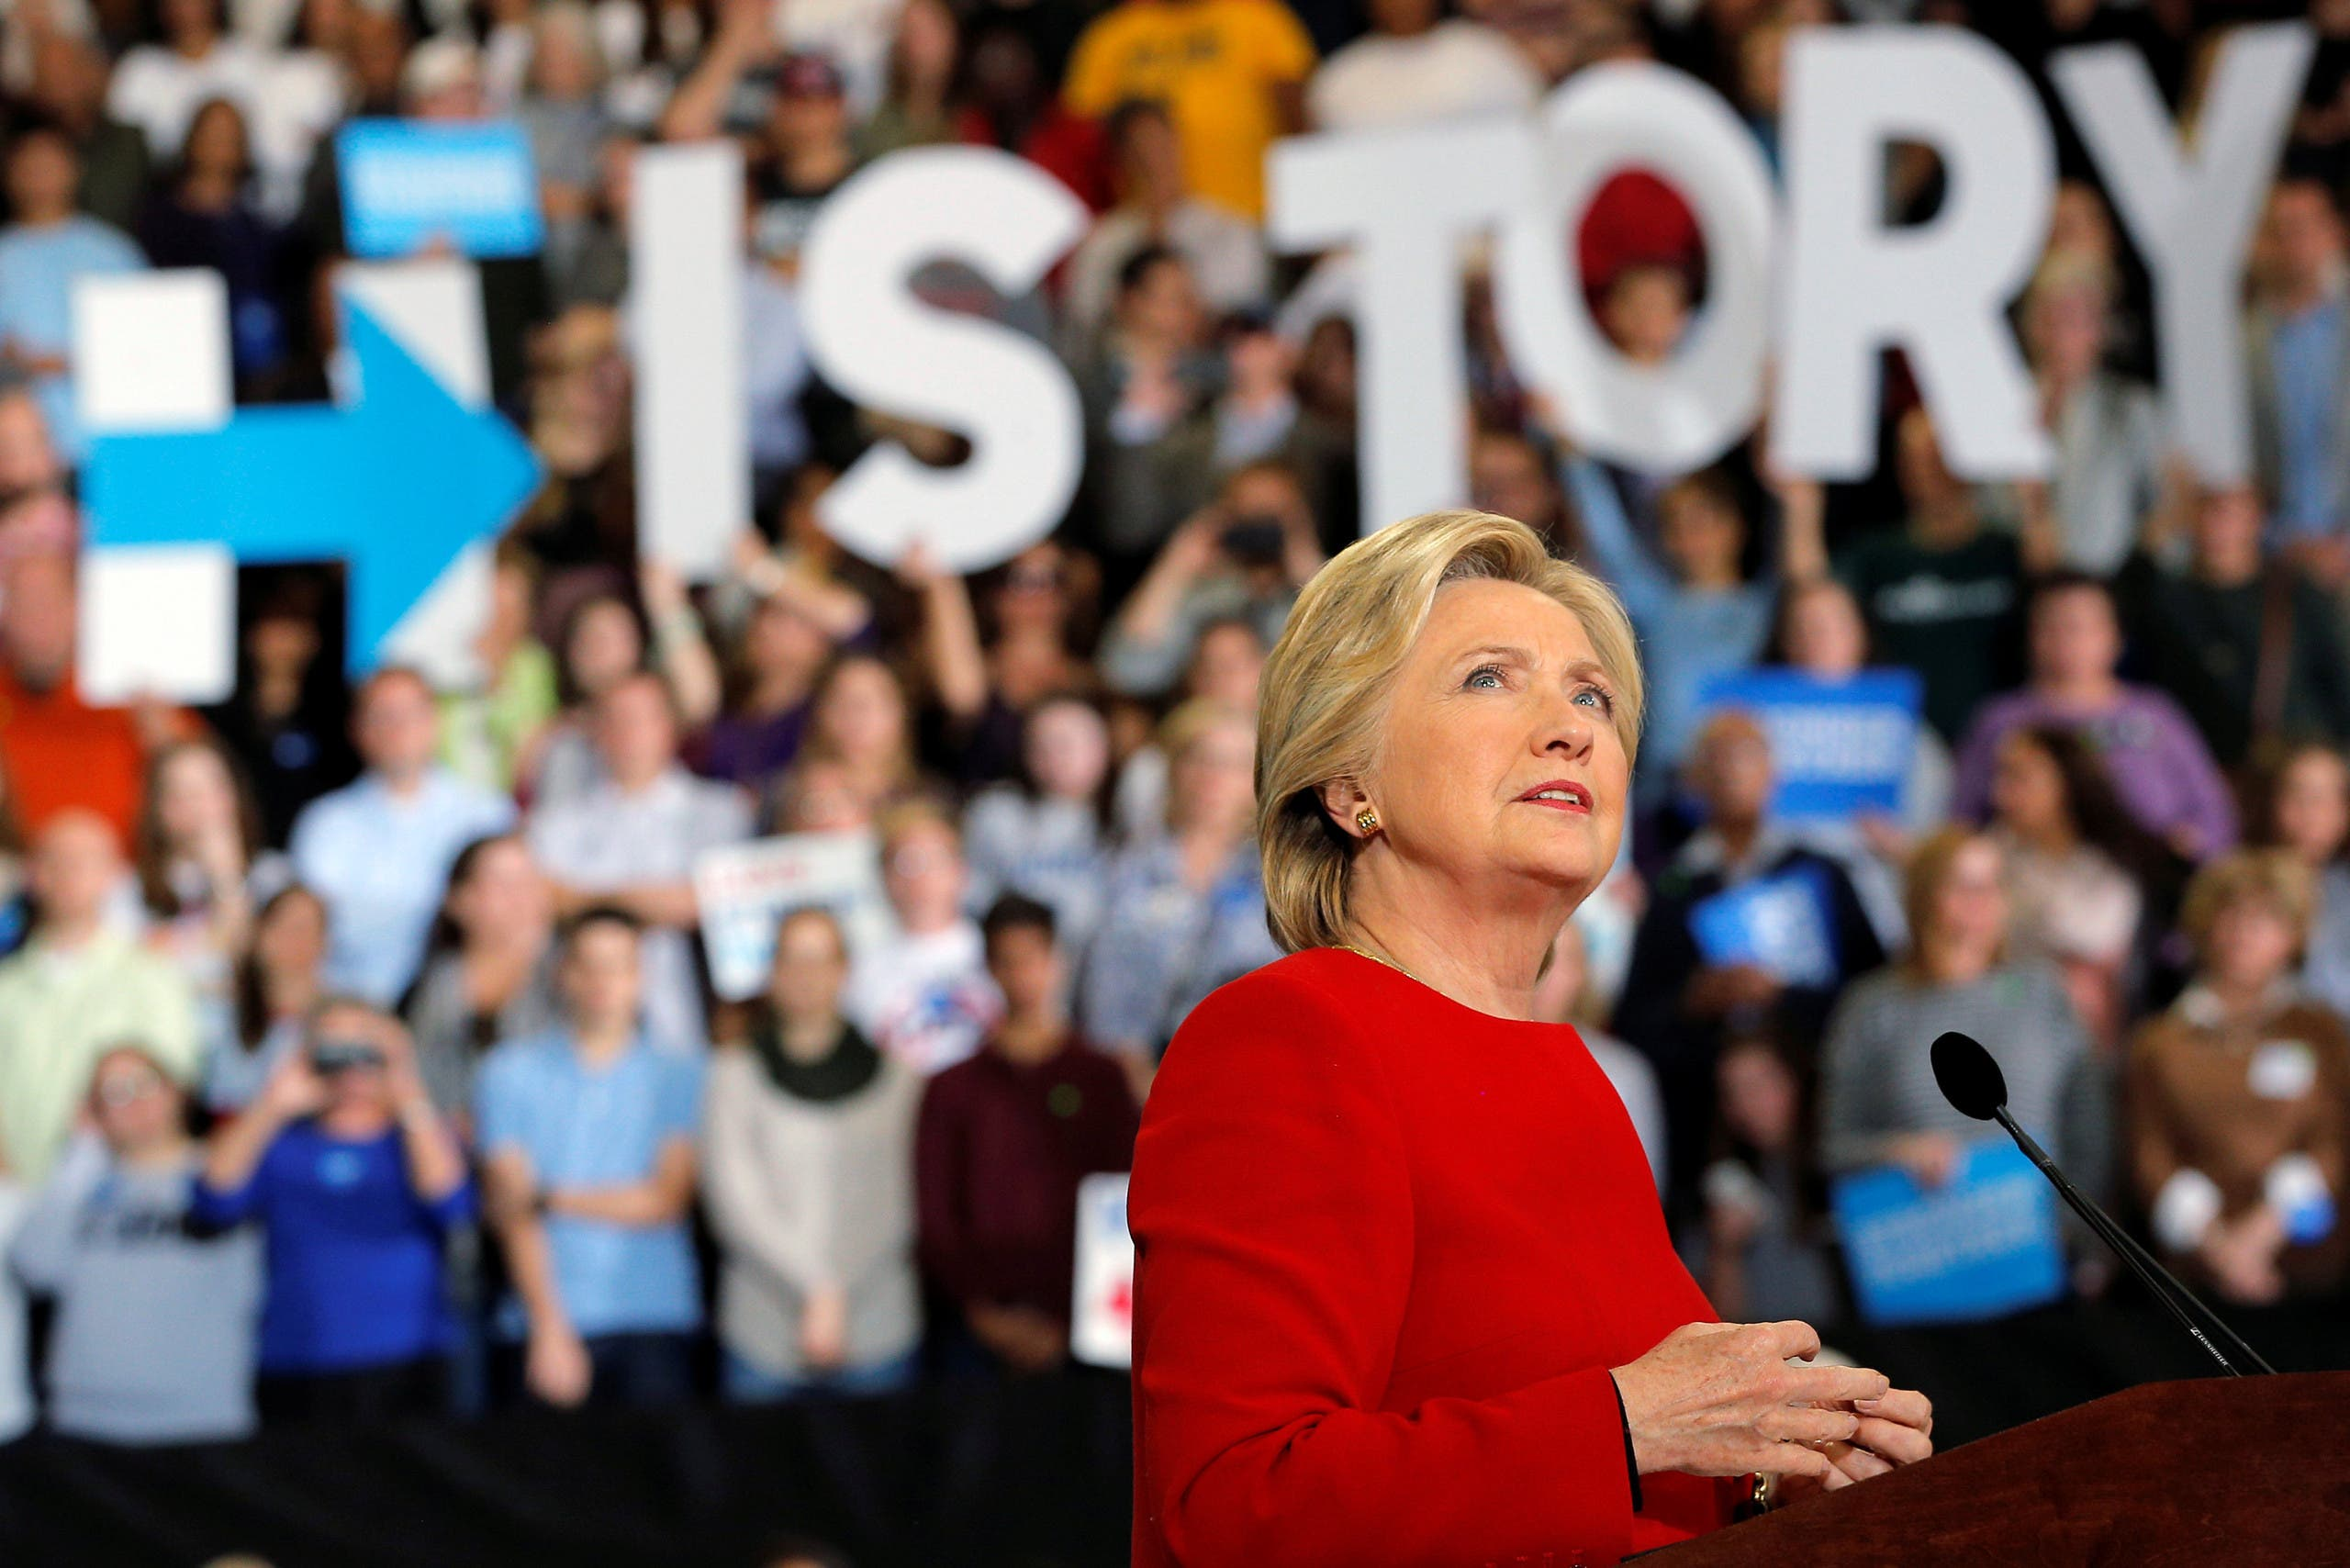 US Democratic presidential nominee Hillary Clinton speaks at a campaign rally in Raleigh, North Carolina, U.S. November 8, 2016, before the election November 8. (Reuters)